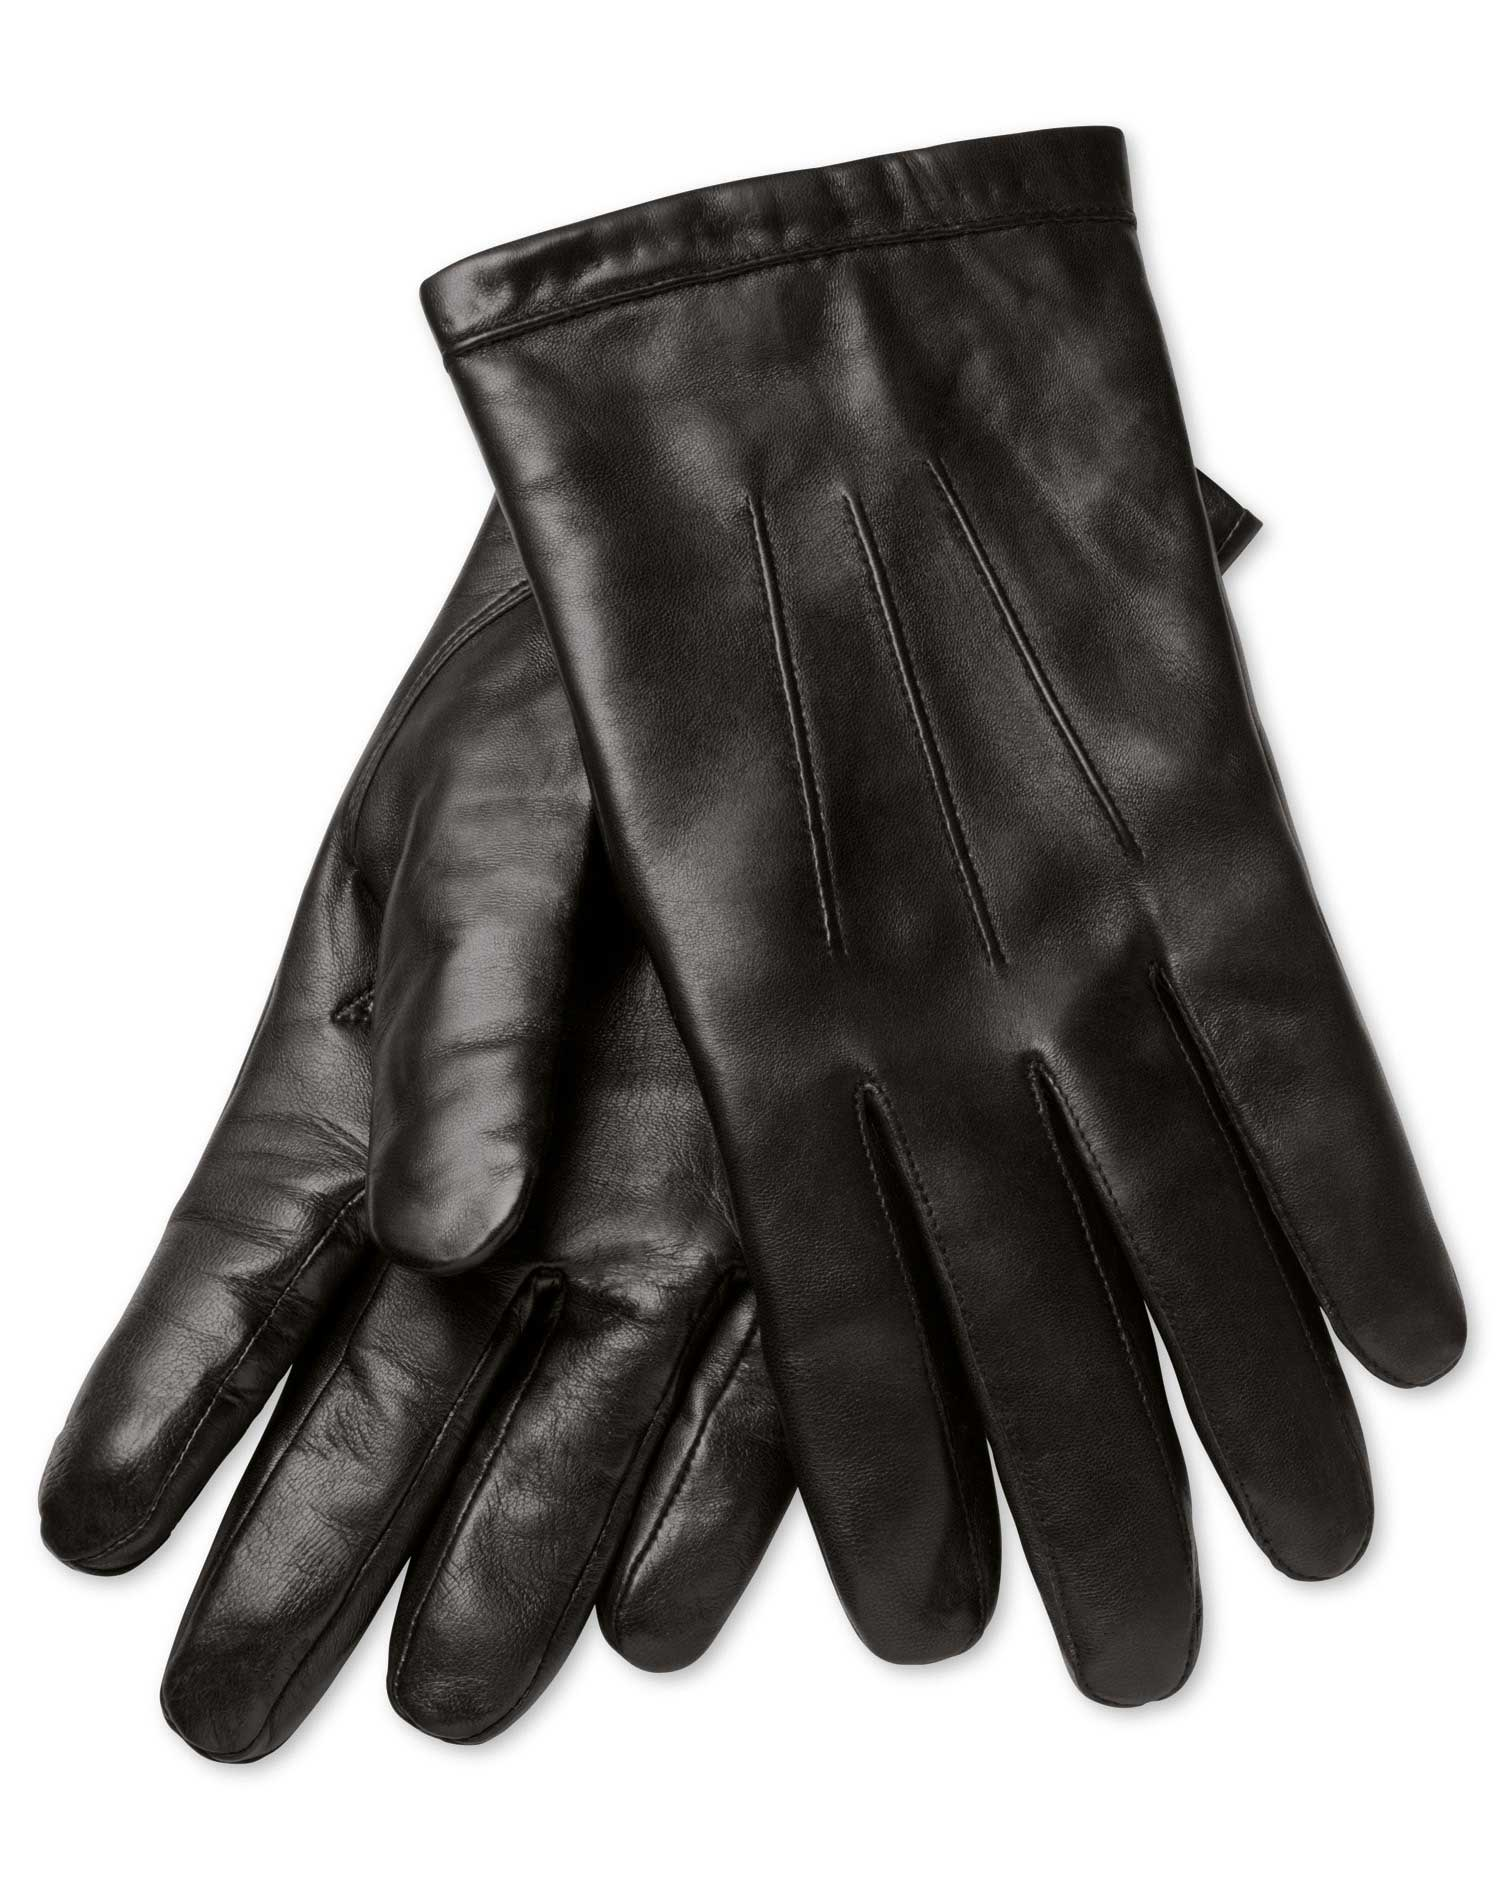 Black Leather Gloves Size Medium by Charles Tyrwhitt